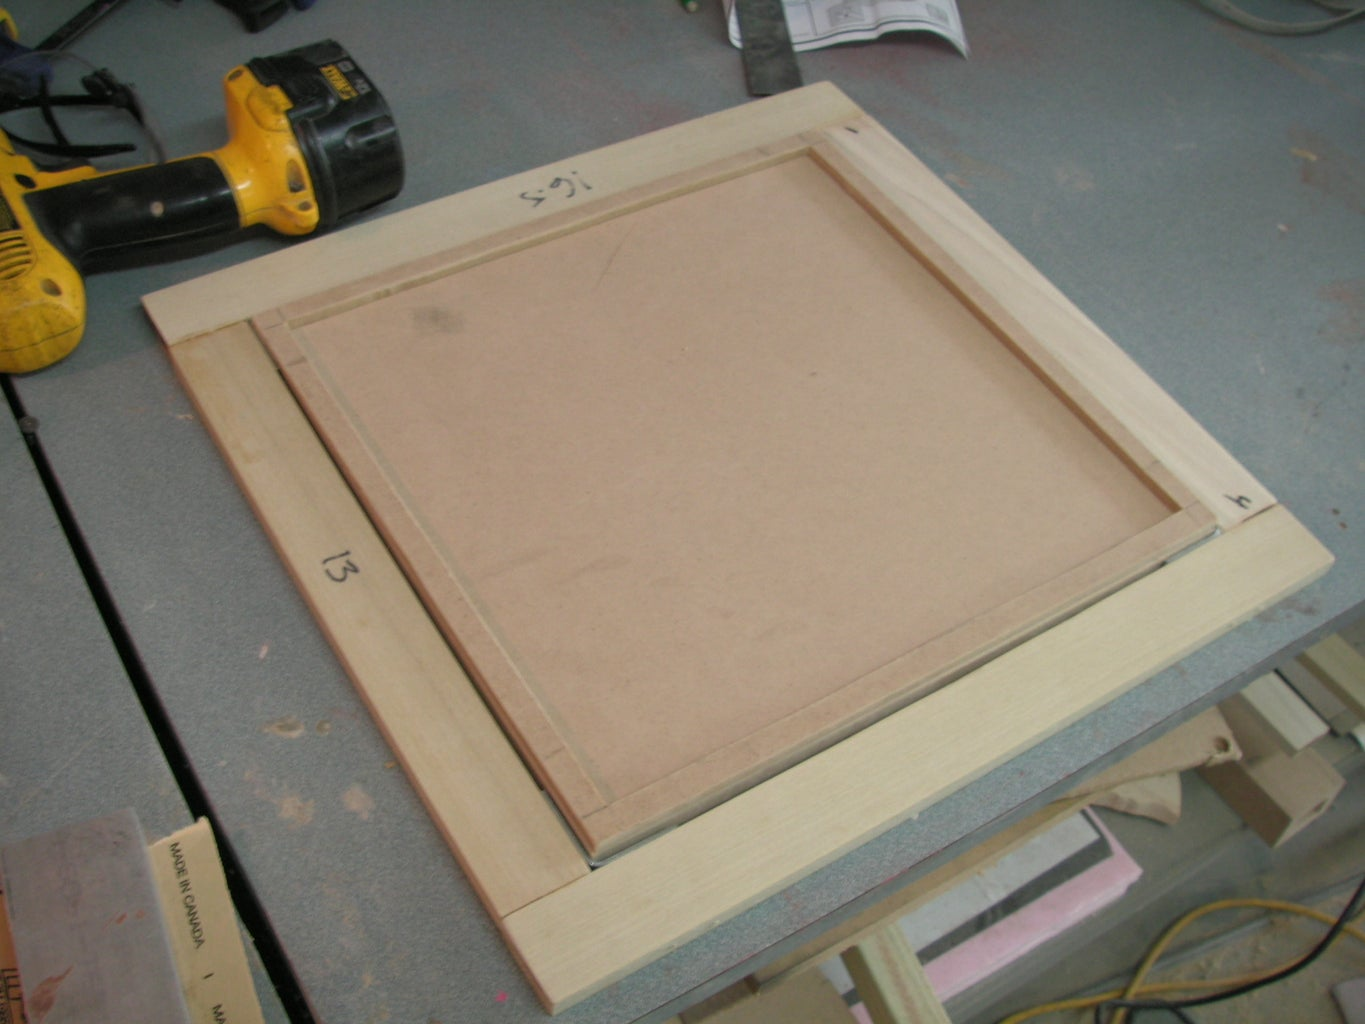 Add a Frame to Hold Your Plastic